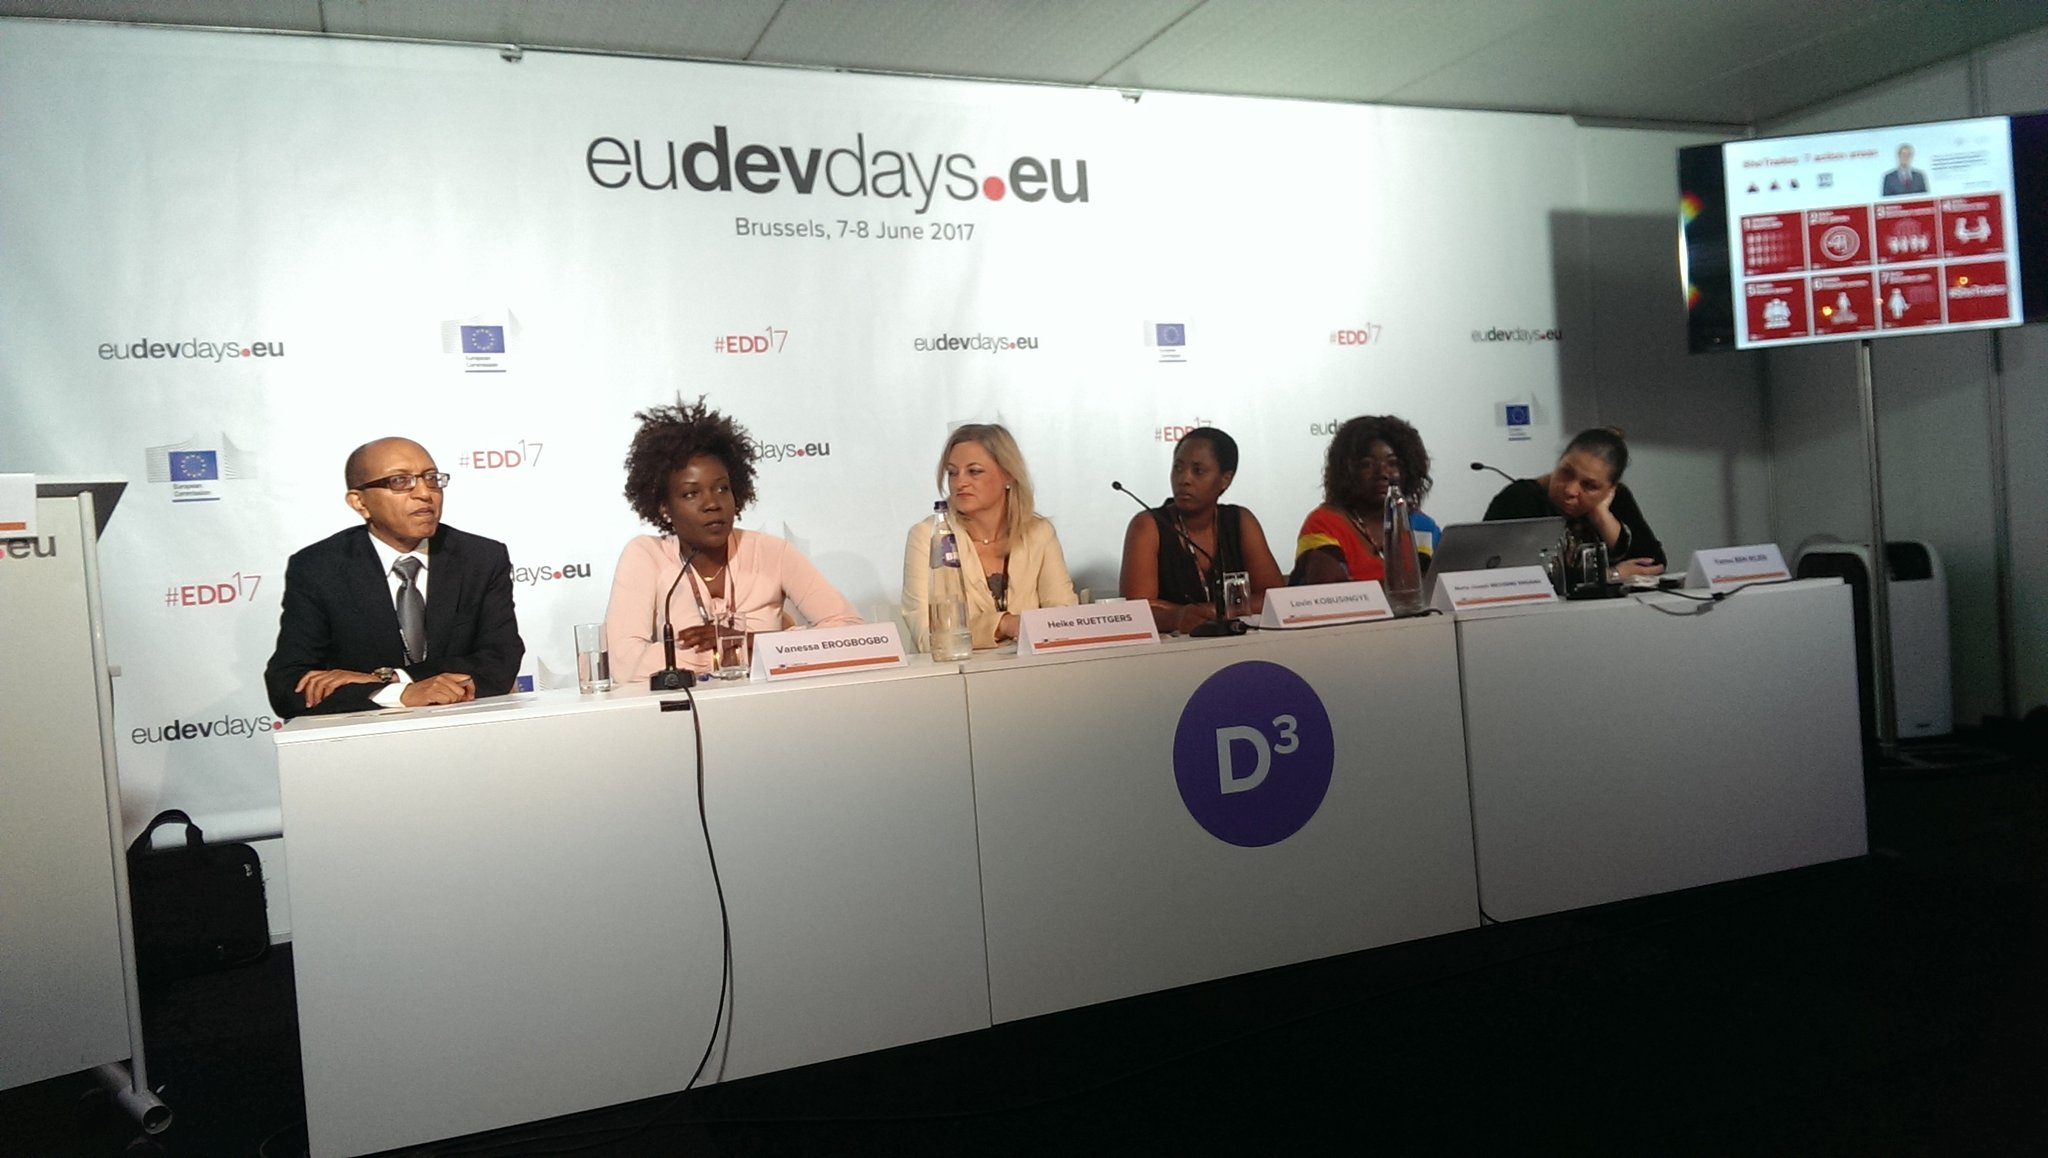 Only 2% of ODI Aid is spent on #Women - more data needed to support investment of women & identify the gender gaps - #EDD17 w. @verogbogbo https://t.co/cRrFN6WCHZ